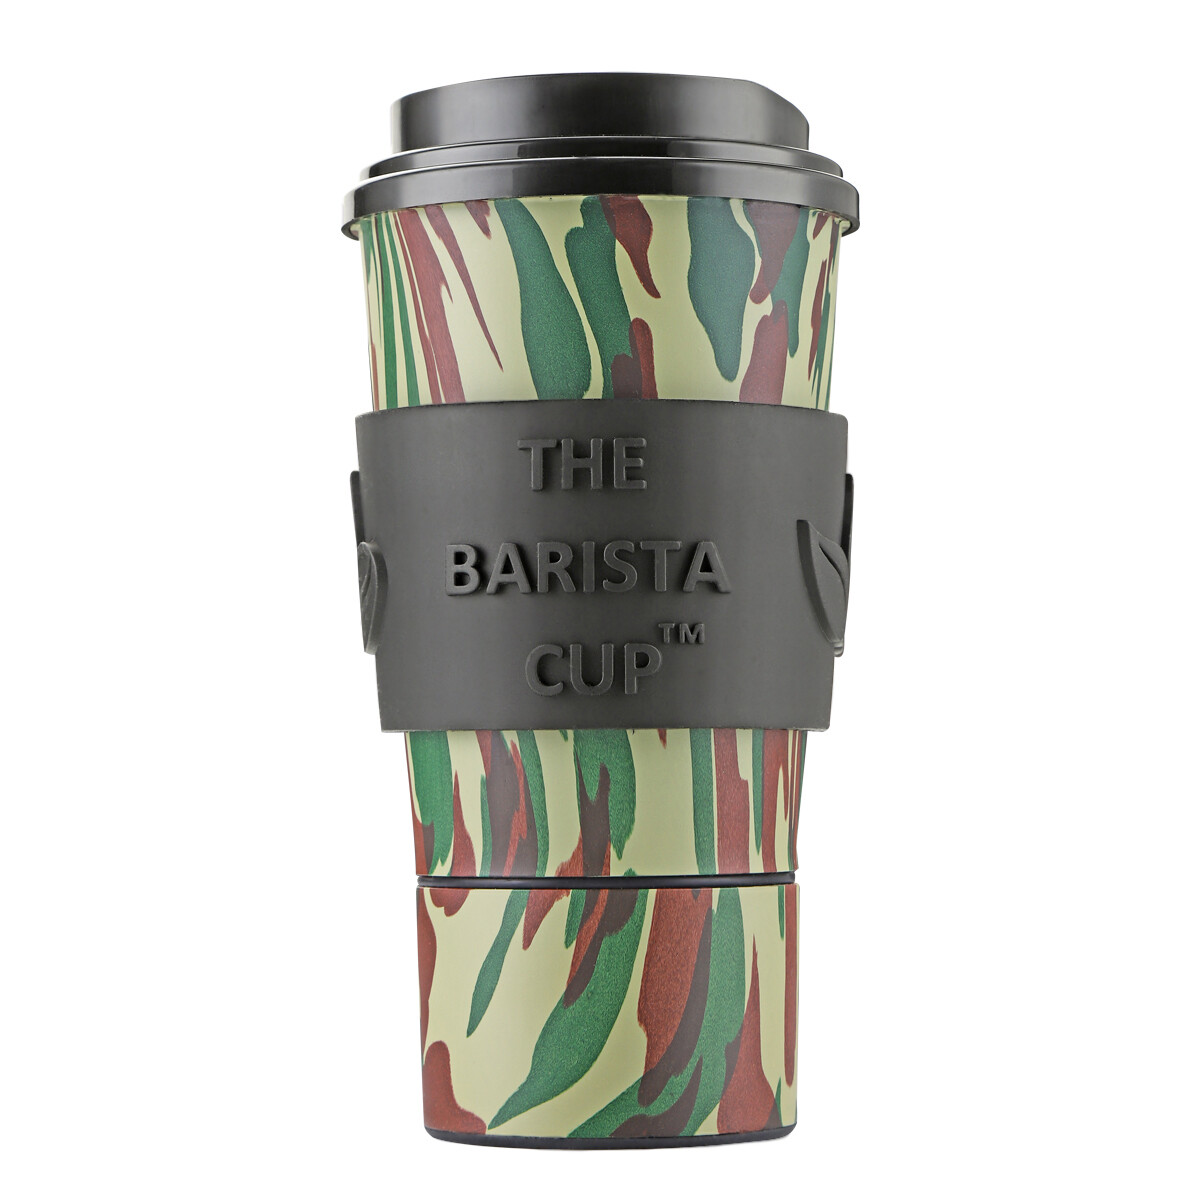 The Barista Spirit: Camo Ranger